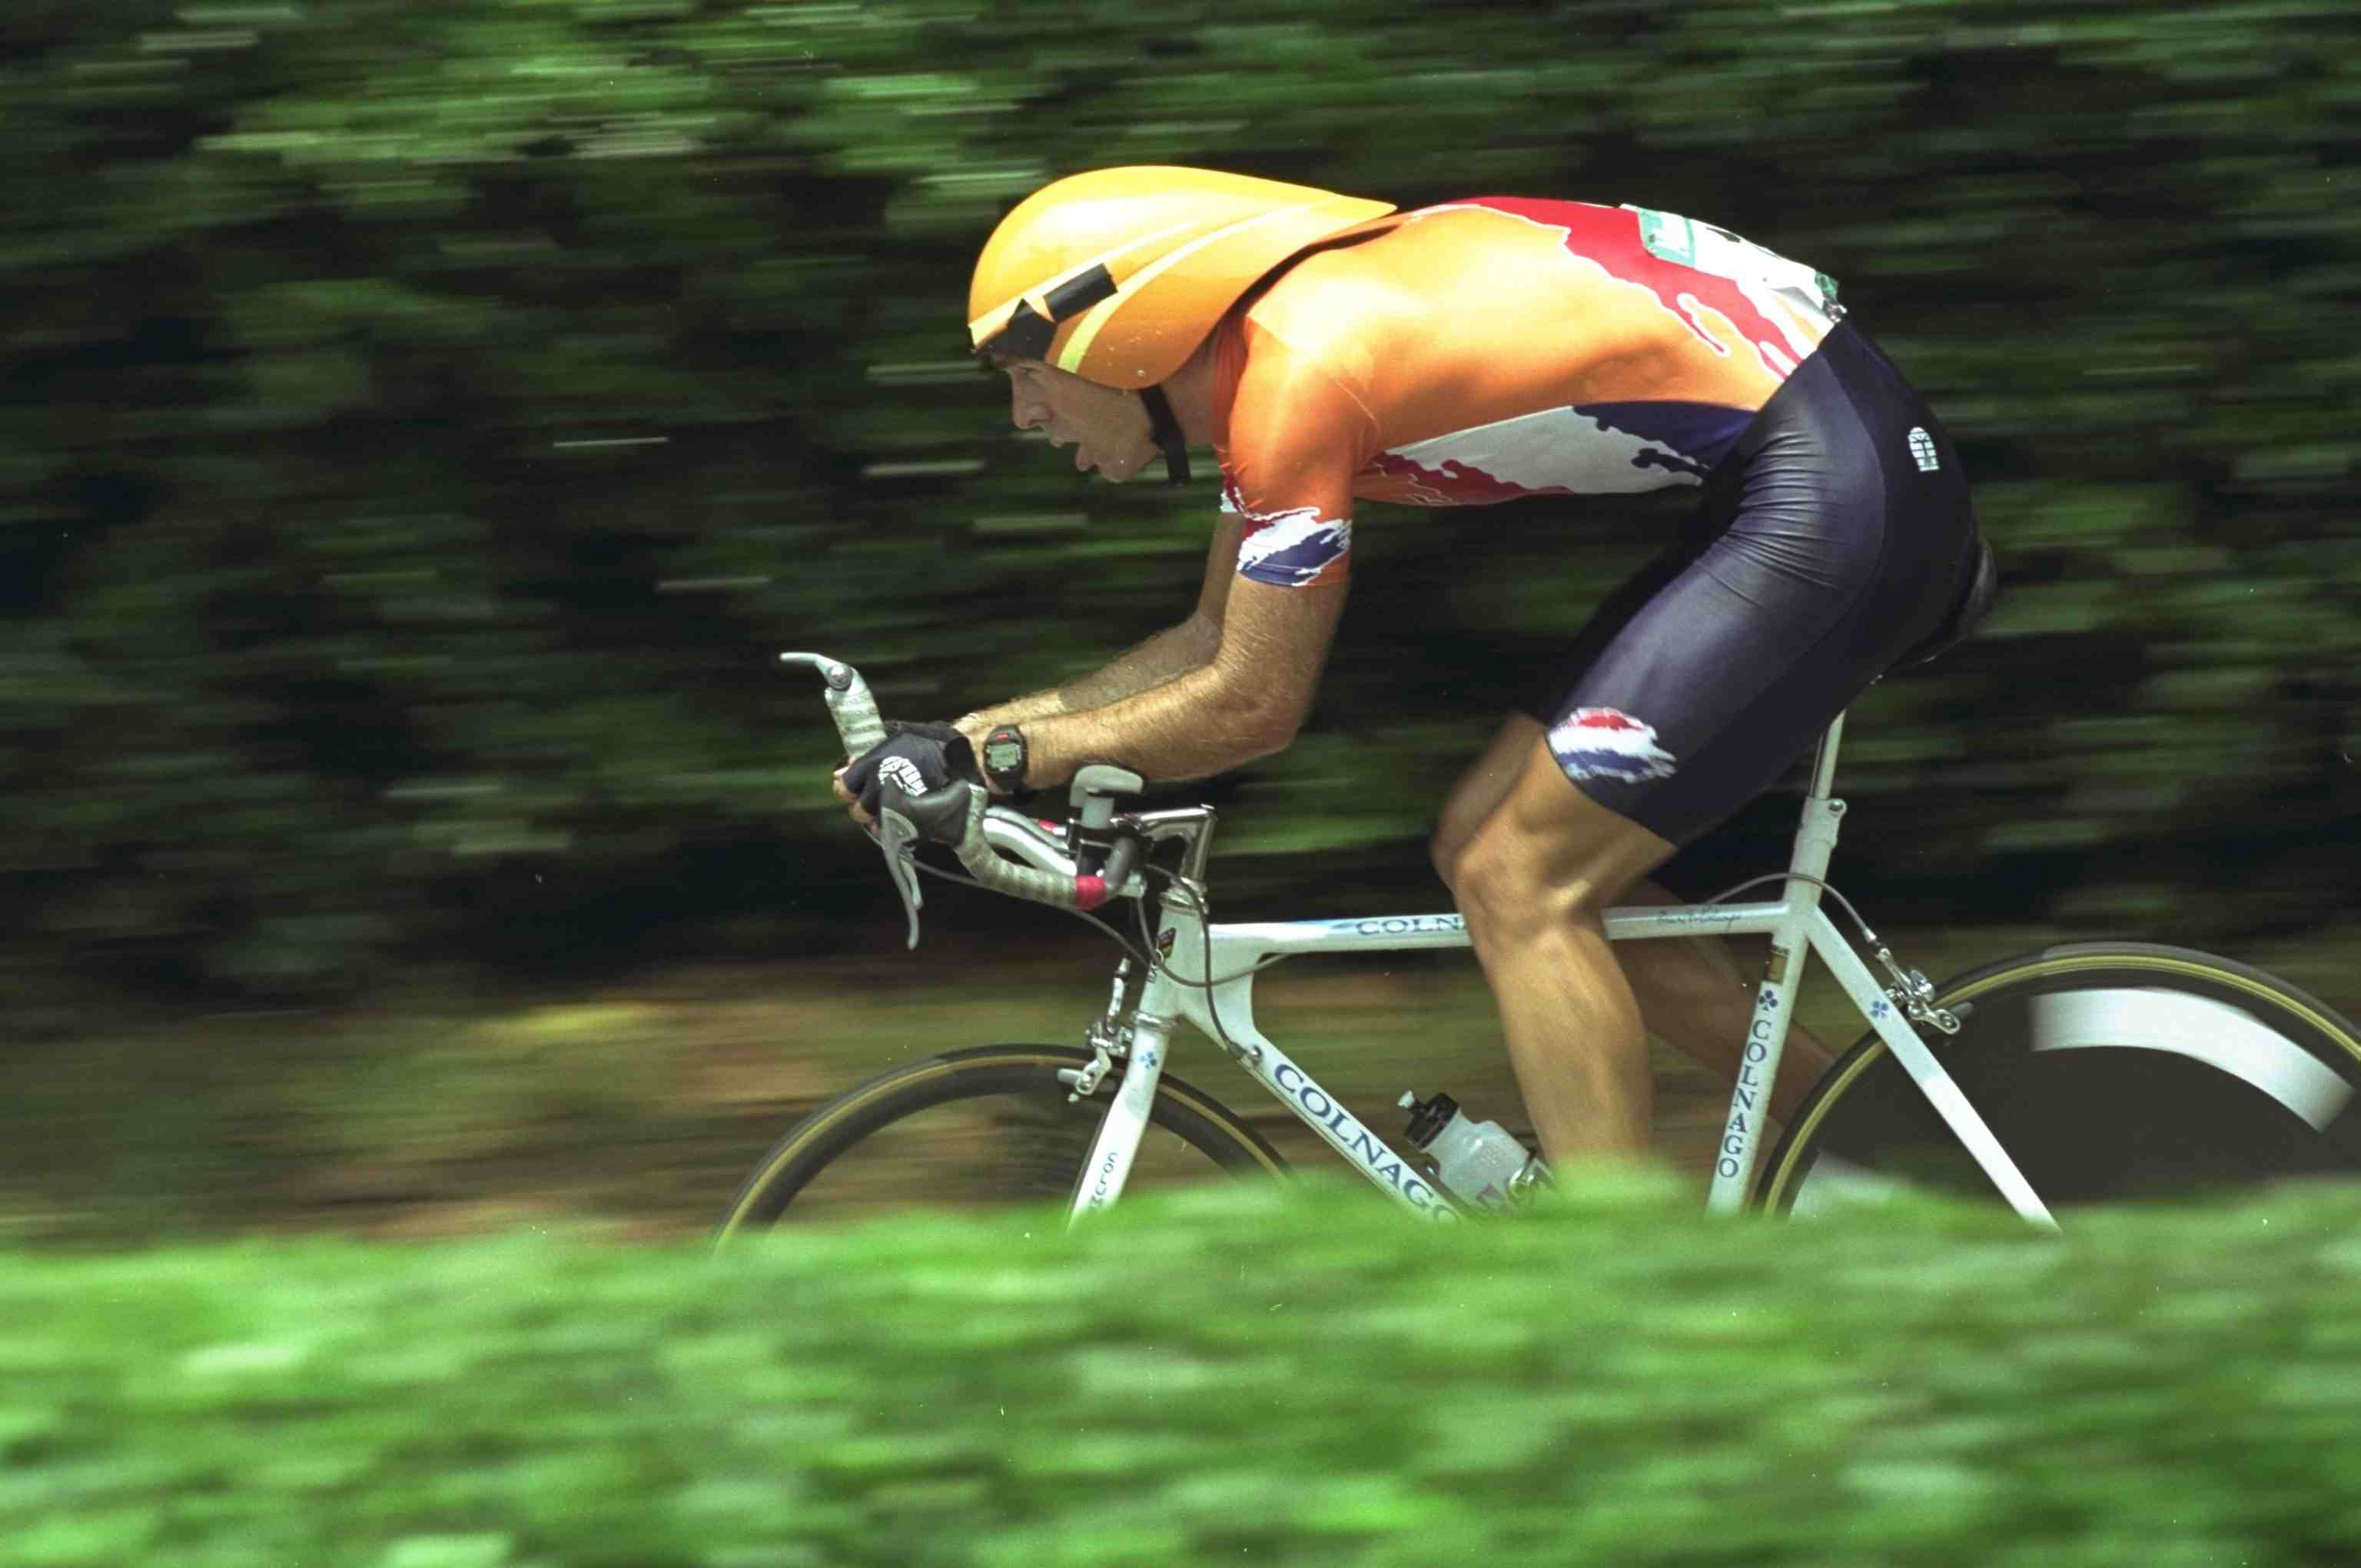 Rabobank GM Erik Breukink knows how to time trial (1996 file photo).